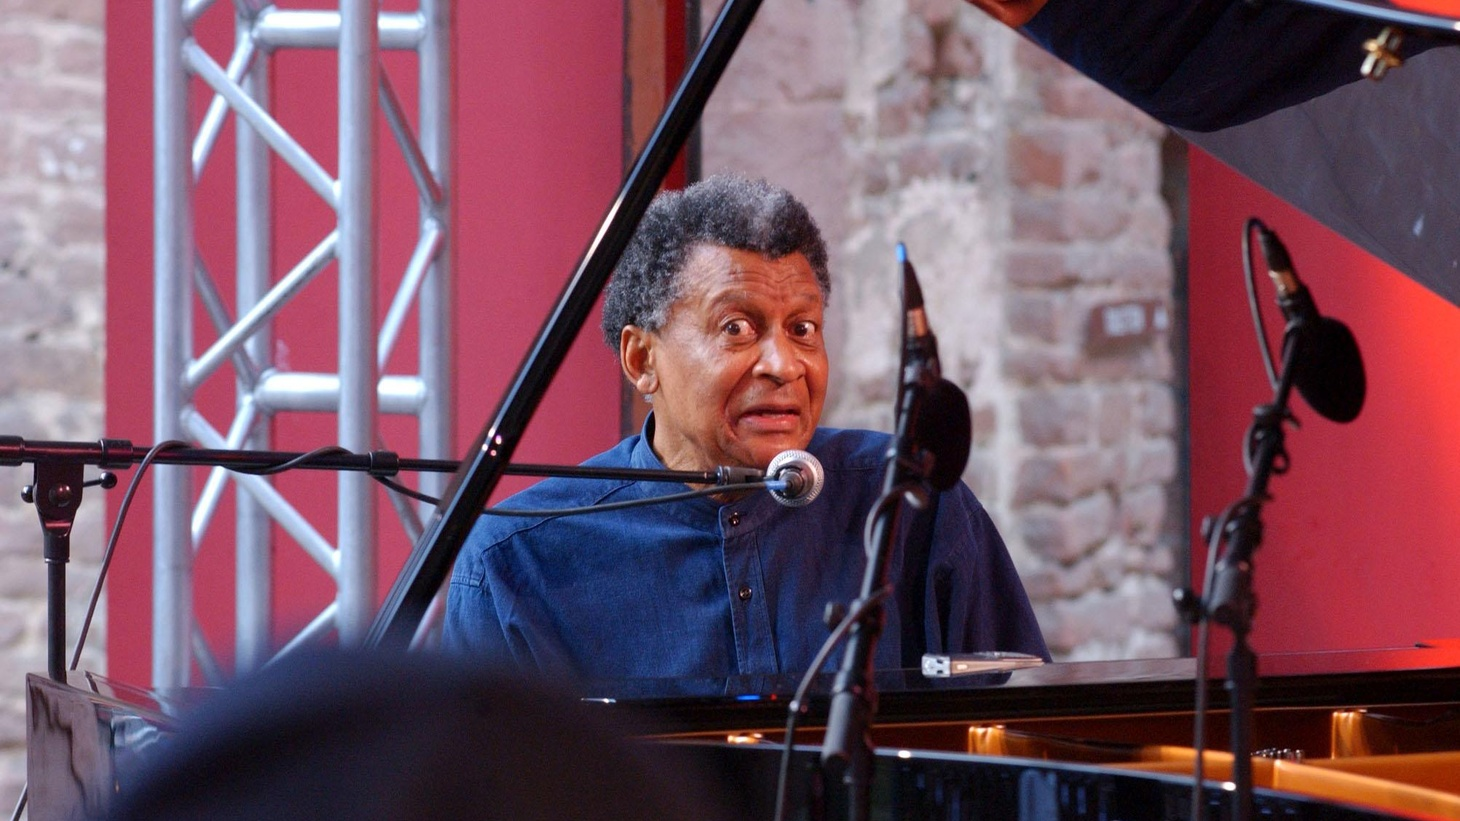 ...from Senzo. 